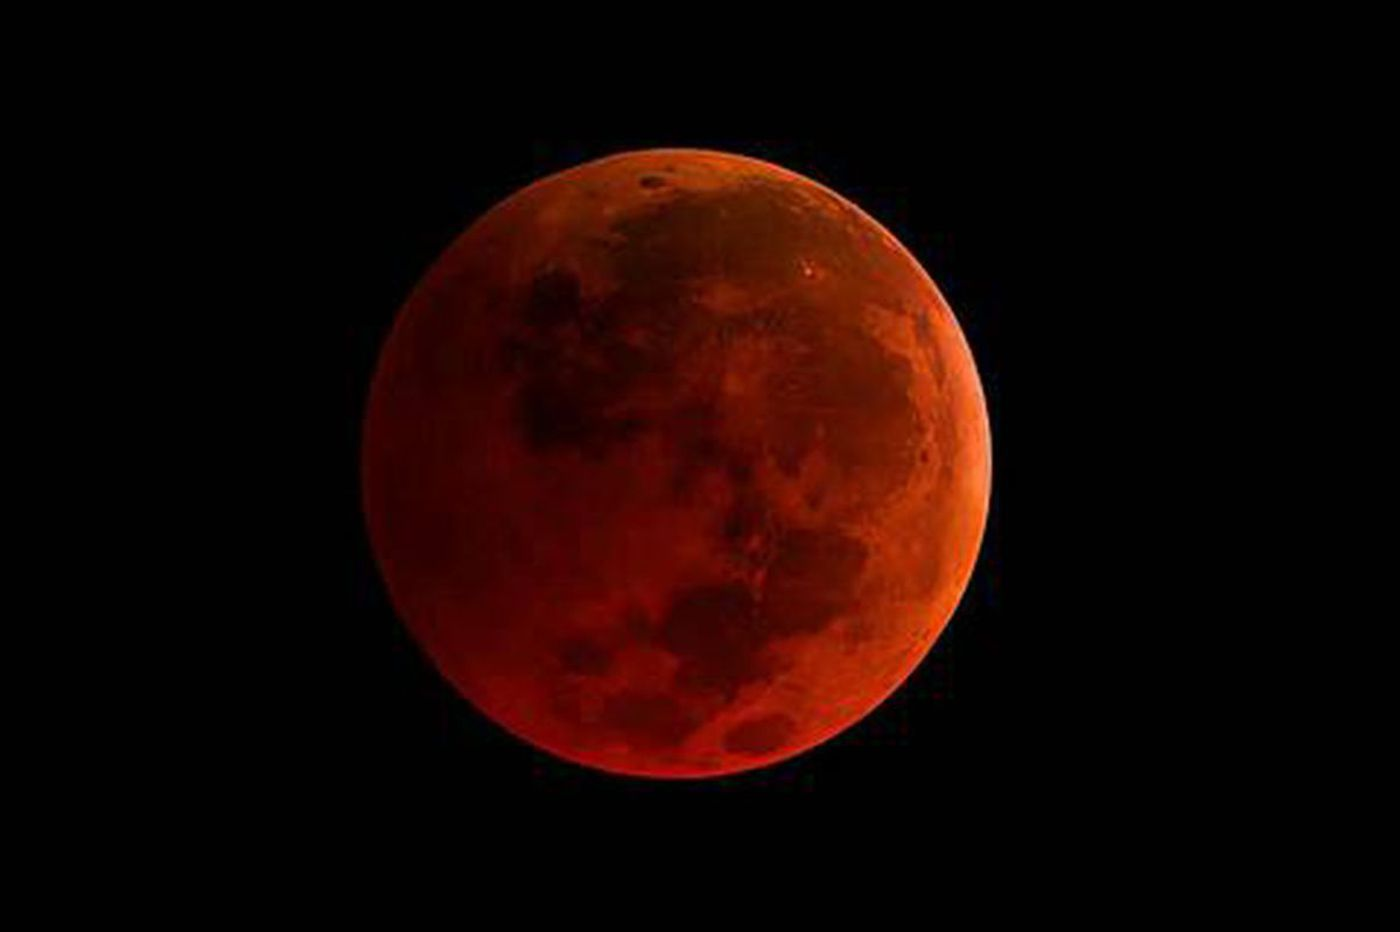 blood moon january 2019 new jersey - photo #11